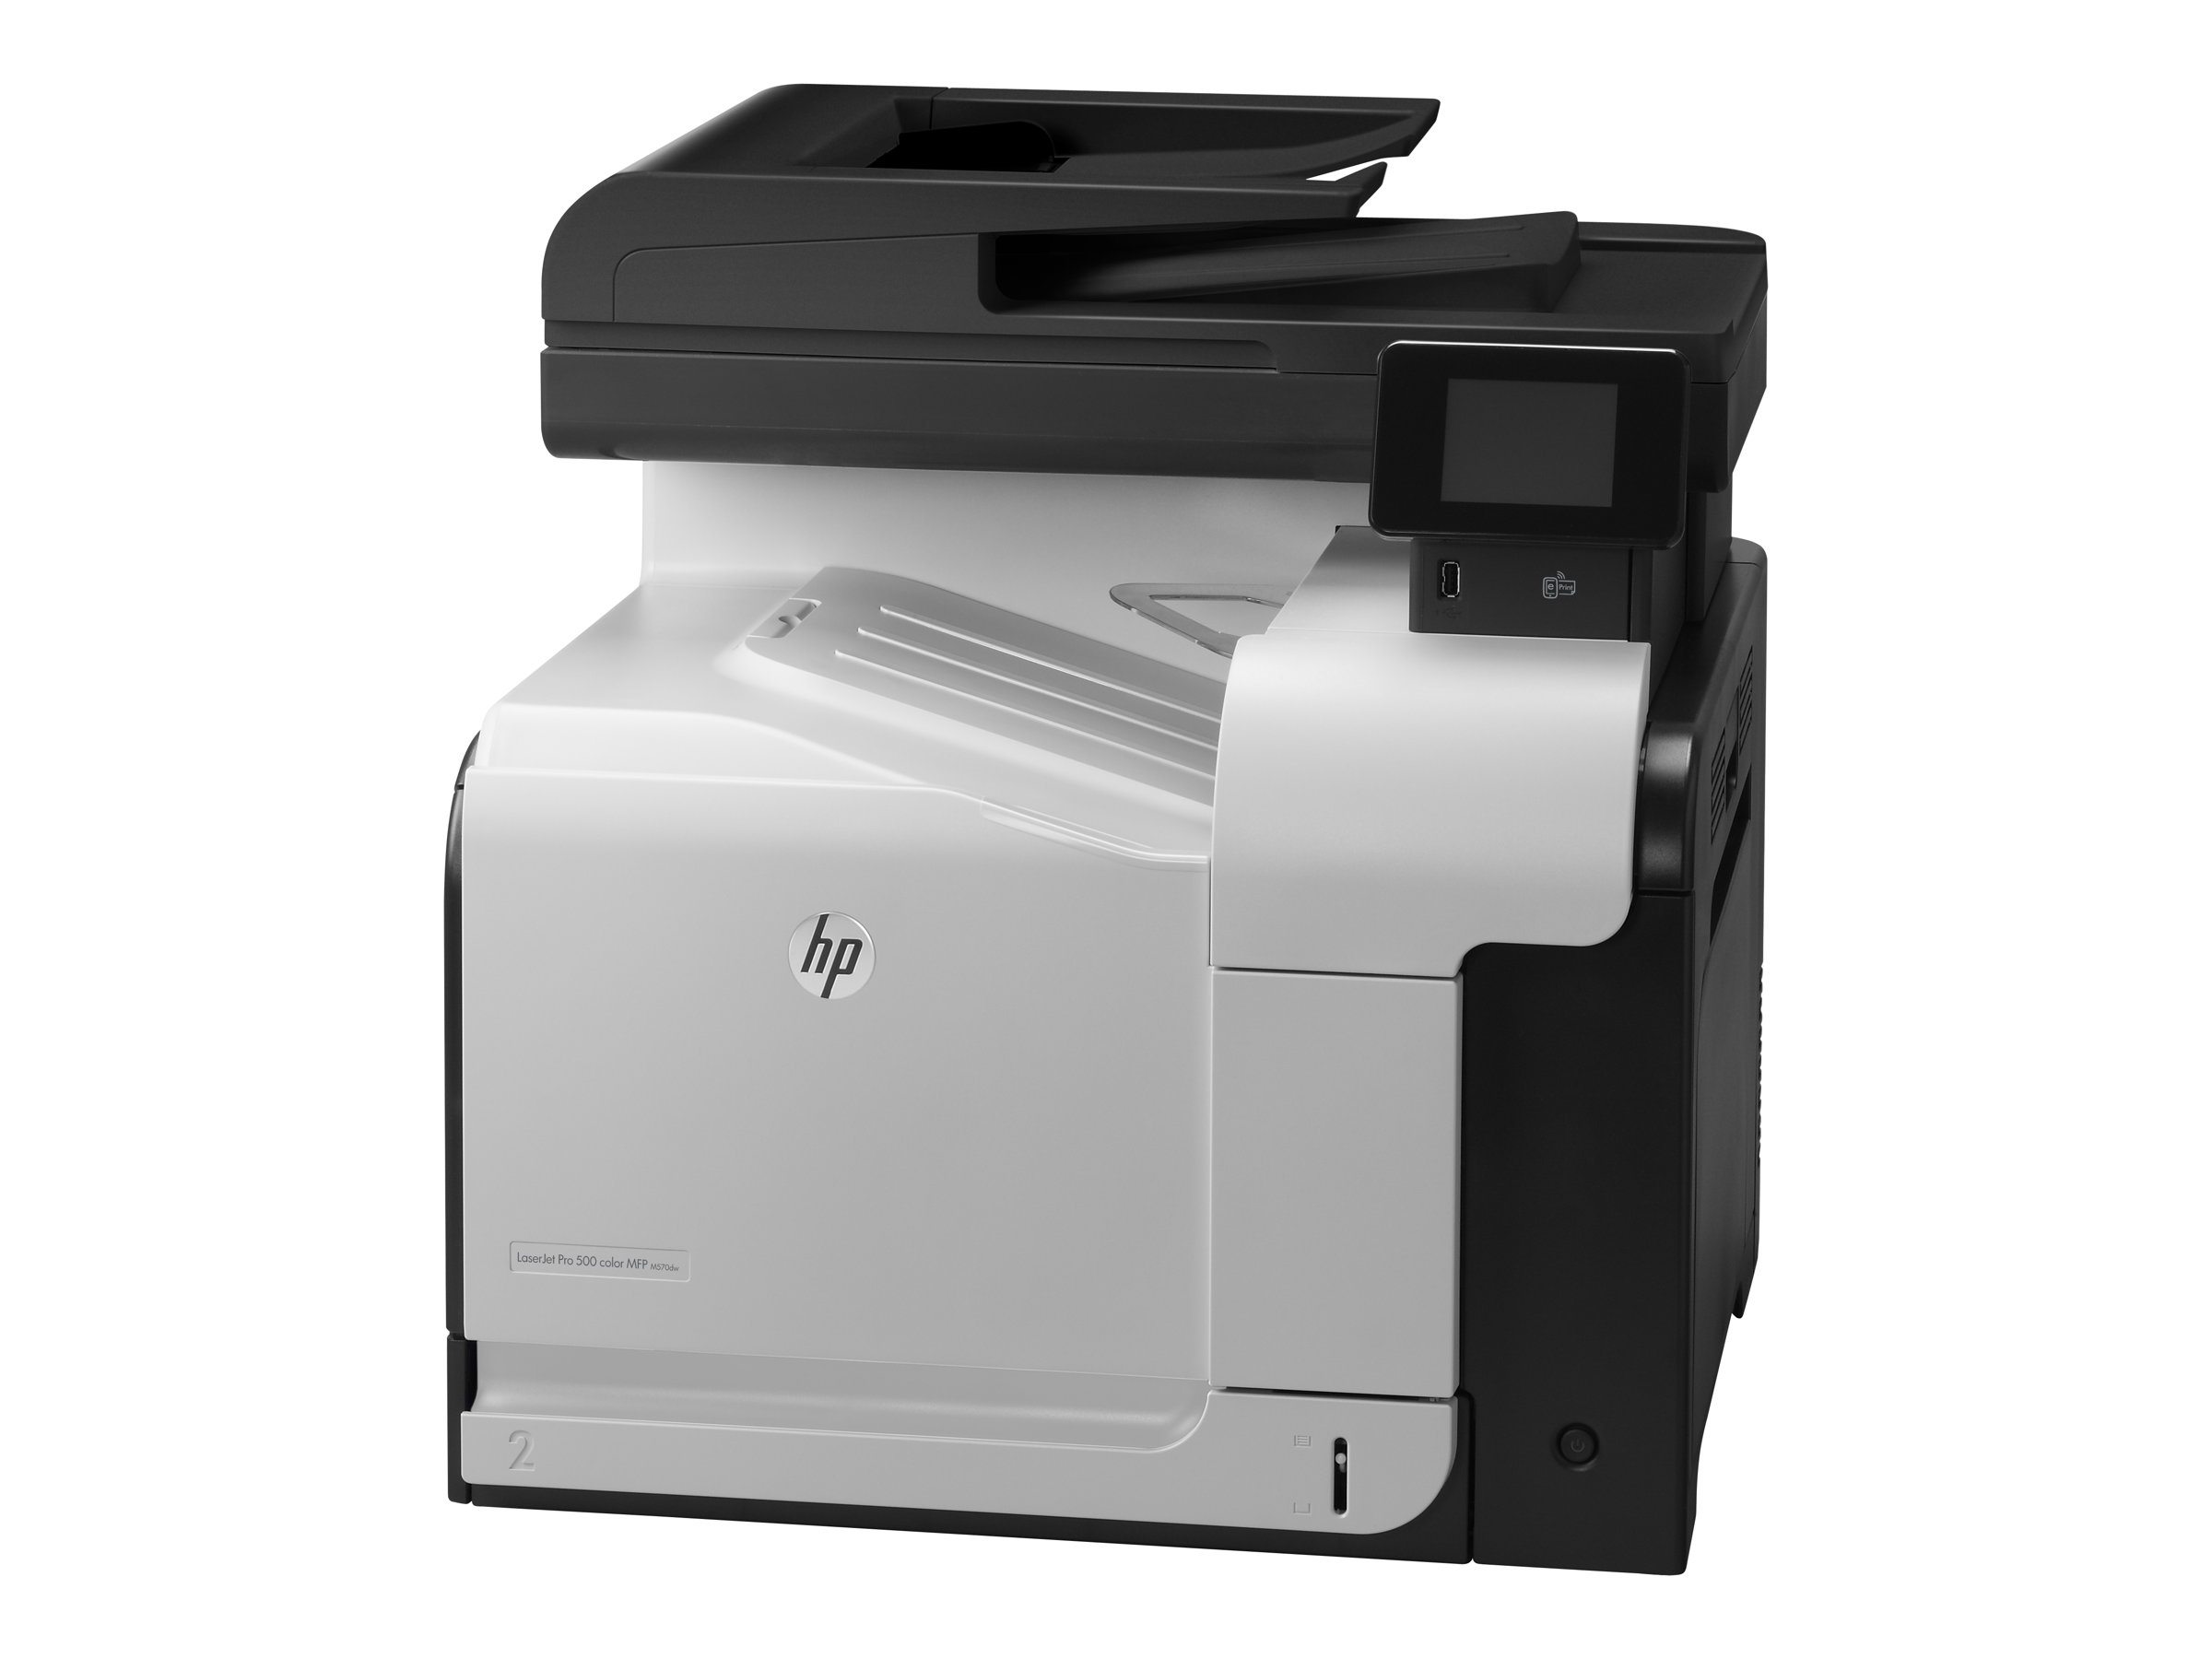 hp laserjet pro mfp m570dw imprimante multifonctions. Black Bedroom Furniture Sets. Home Design Ideas